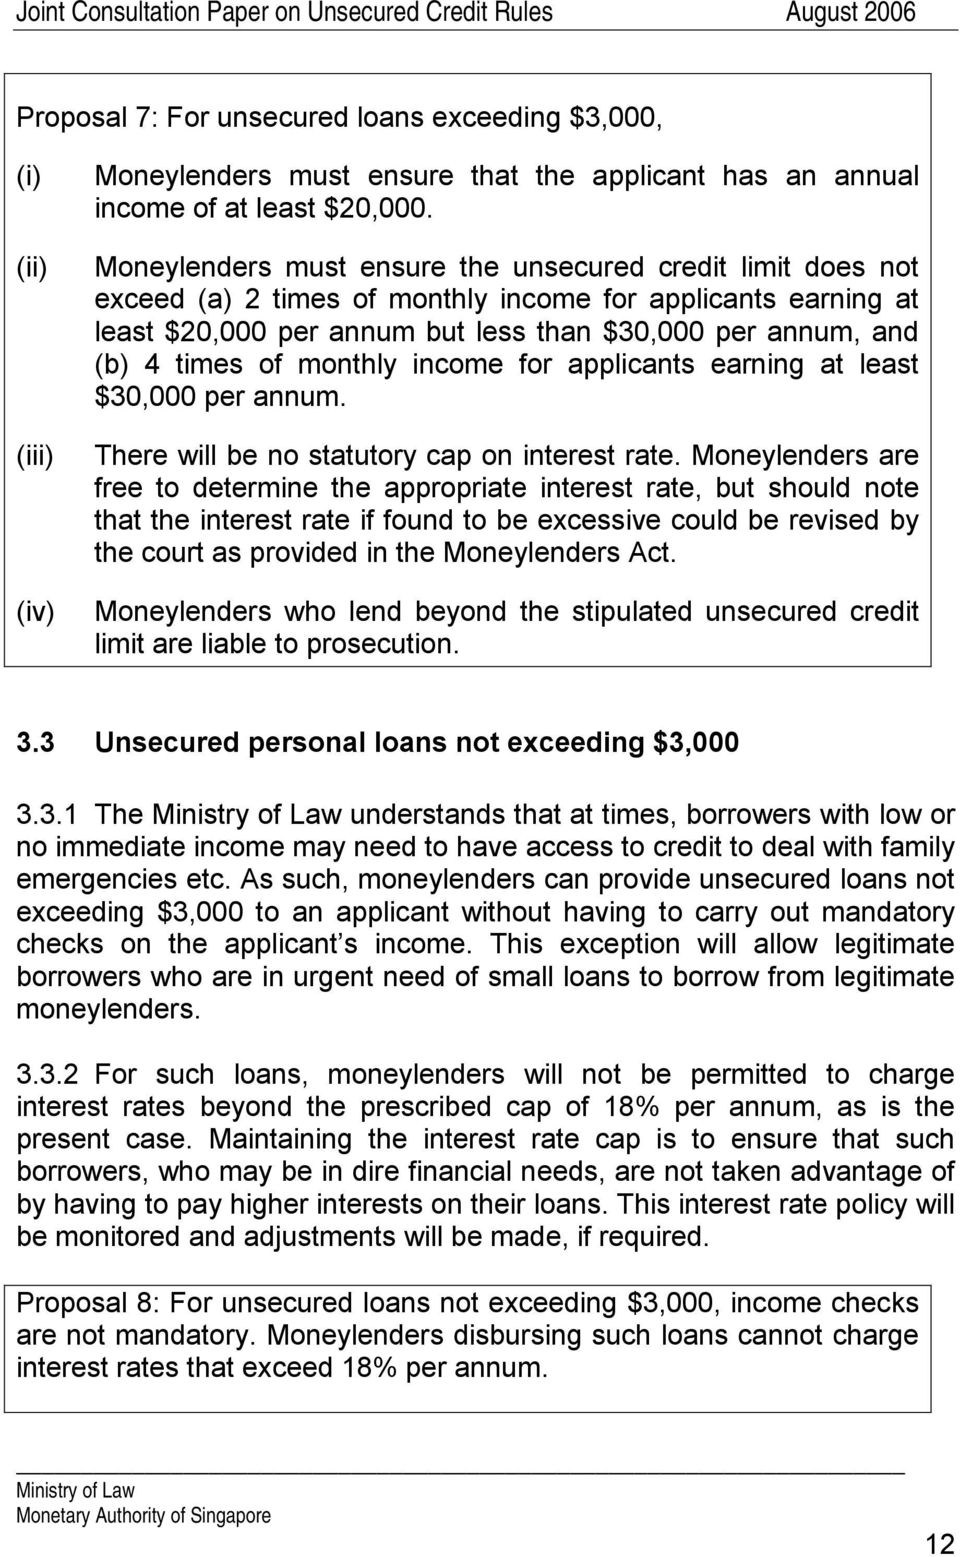 monthly income for applicants earning at least $30,000 per annum. There will be no statutory cap on interest rate.